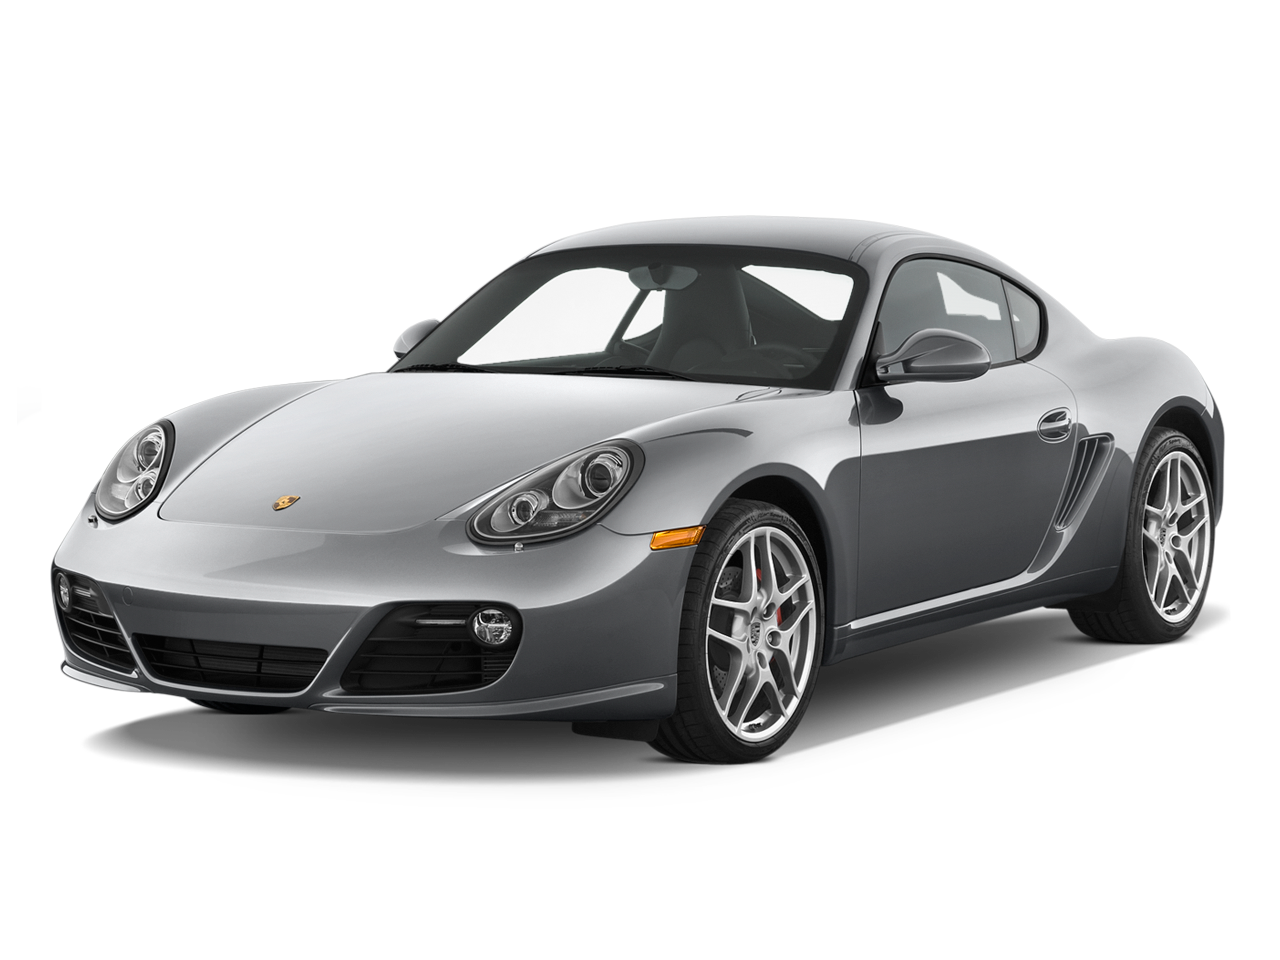 2009 porsche cayman s porsche sport coupe review automobile magazine. Black Bedroom Furniture Sets. Home Design Ideas